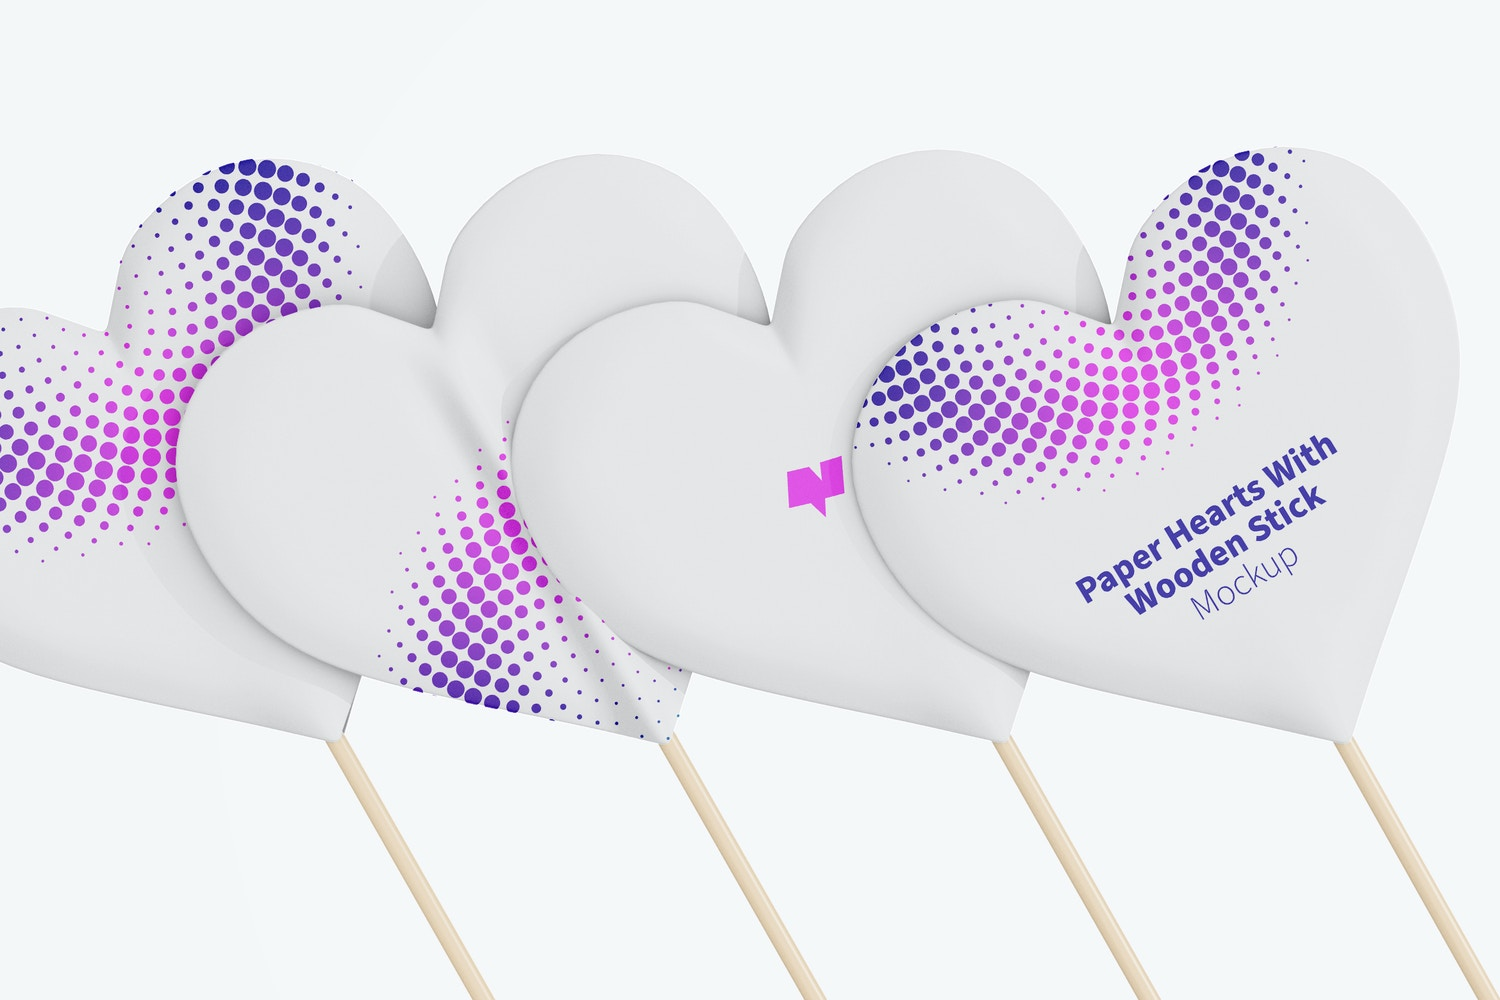 Paper Hearts With Wooden Stick Set Mockup